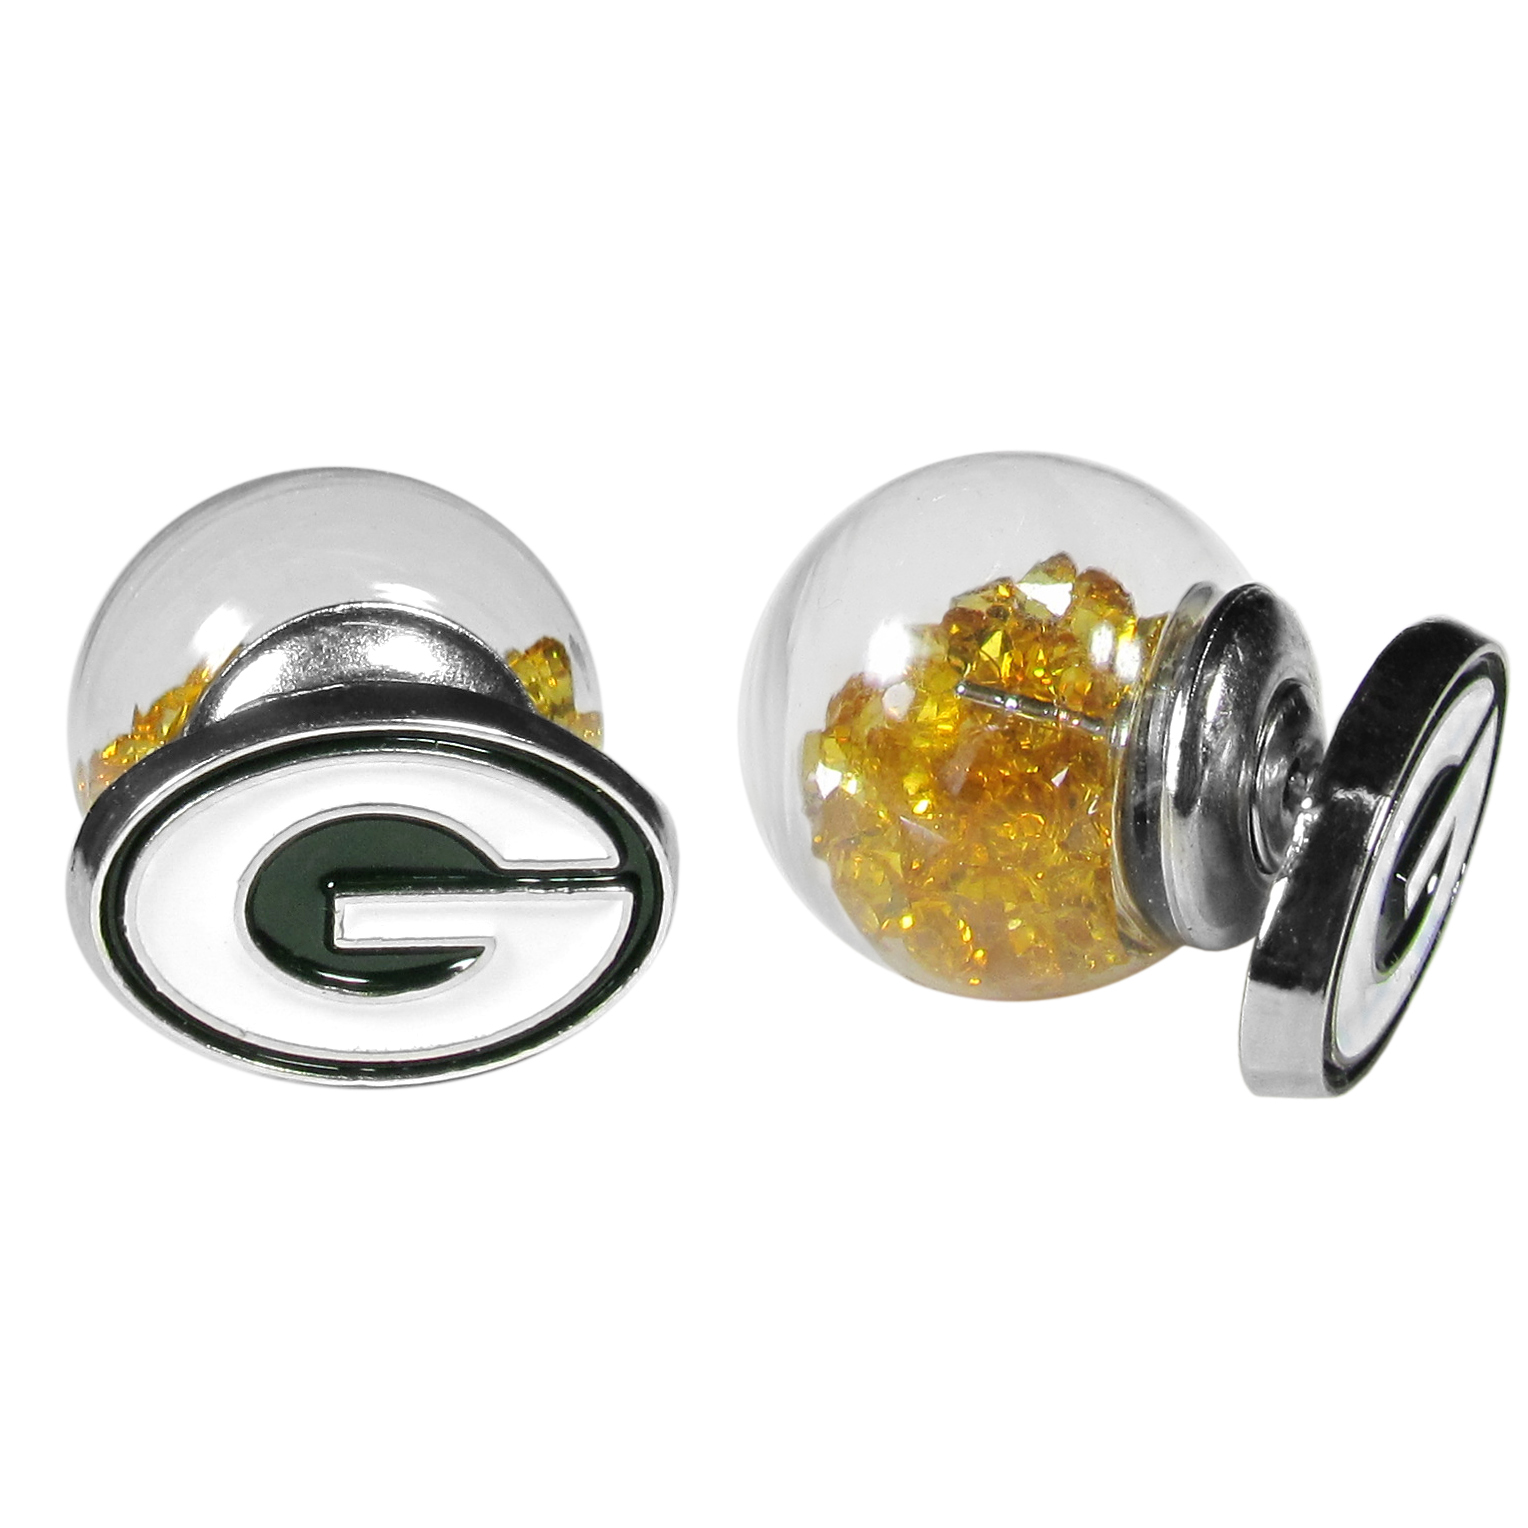 Green Bay Packers Front/Back Earrings - Get in on one of the most popular trends in jewelry, front and back earrings! This must-have style is all of over the red carpets and we taken this contemporary look and paired it with your love of the Green Bay Packers! The front of the earring is a sporty team logo and the back of these eye-catching earrings is a glass ball filled with colored crystal beads. This piece is perfect for a fashion-forward fan, with bold taste and trend-setting style.